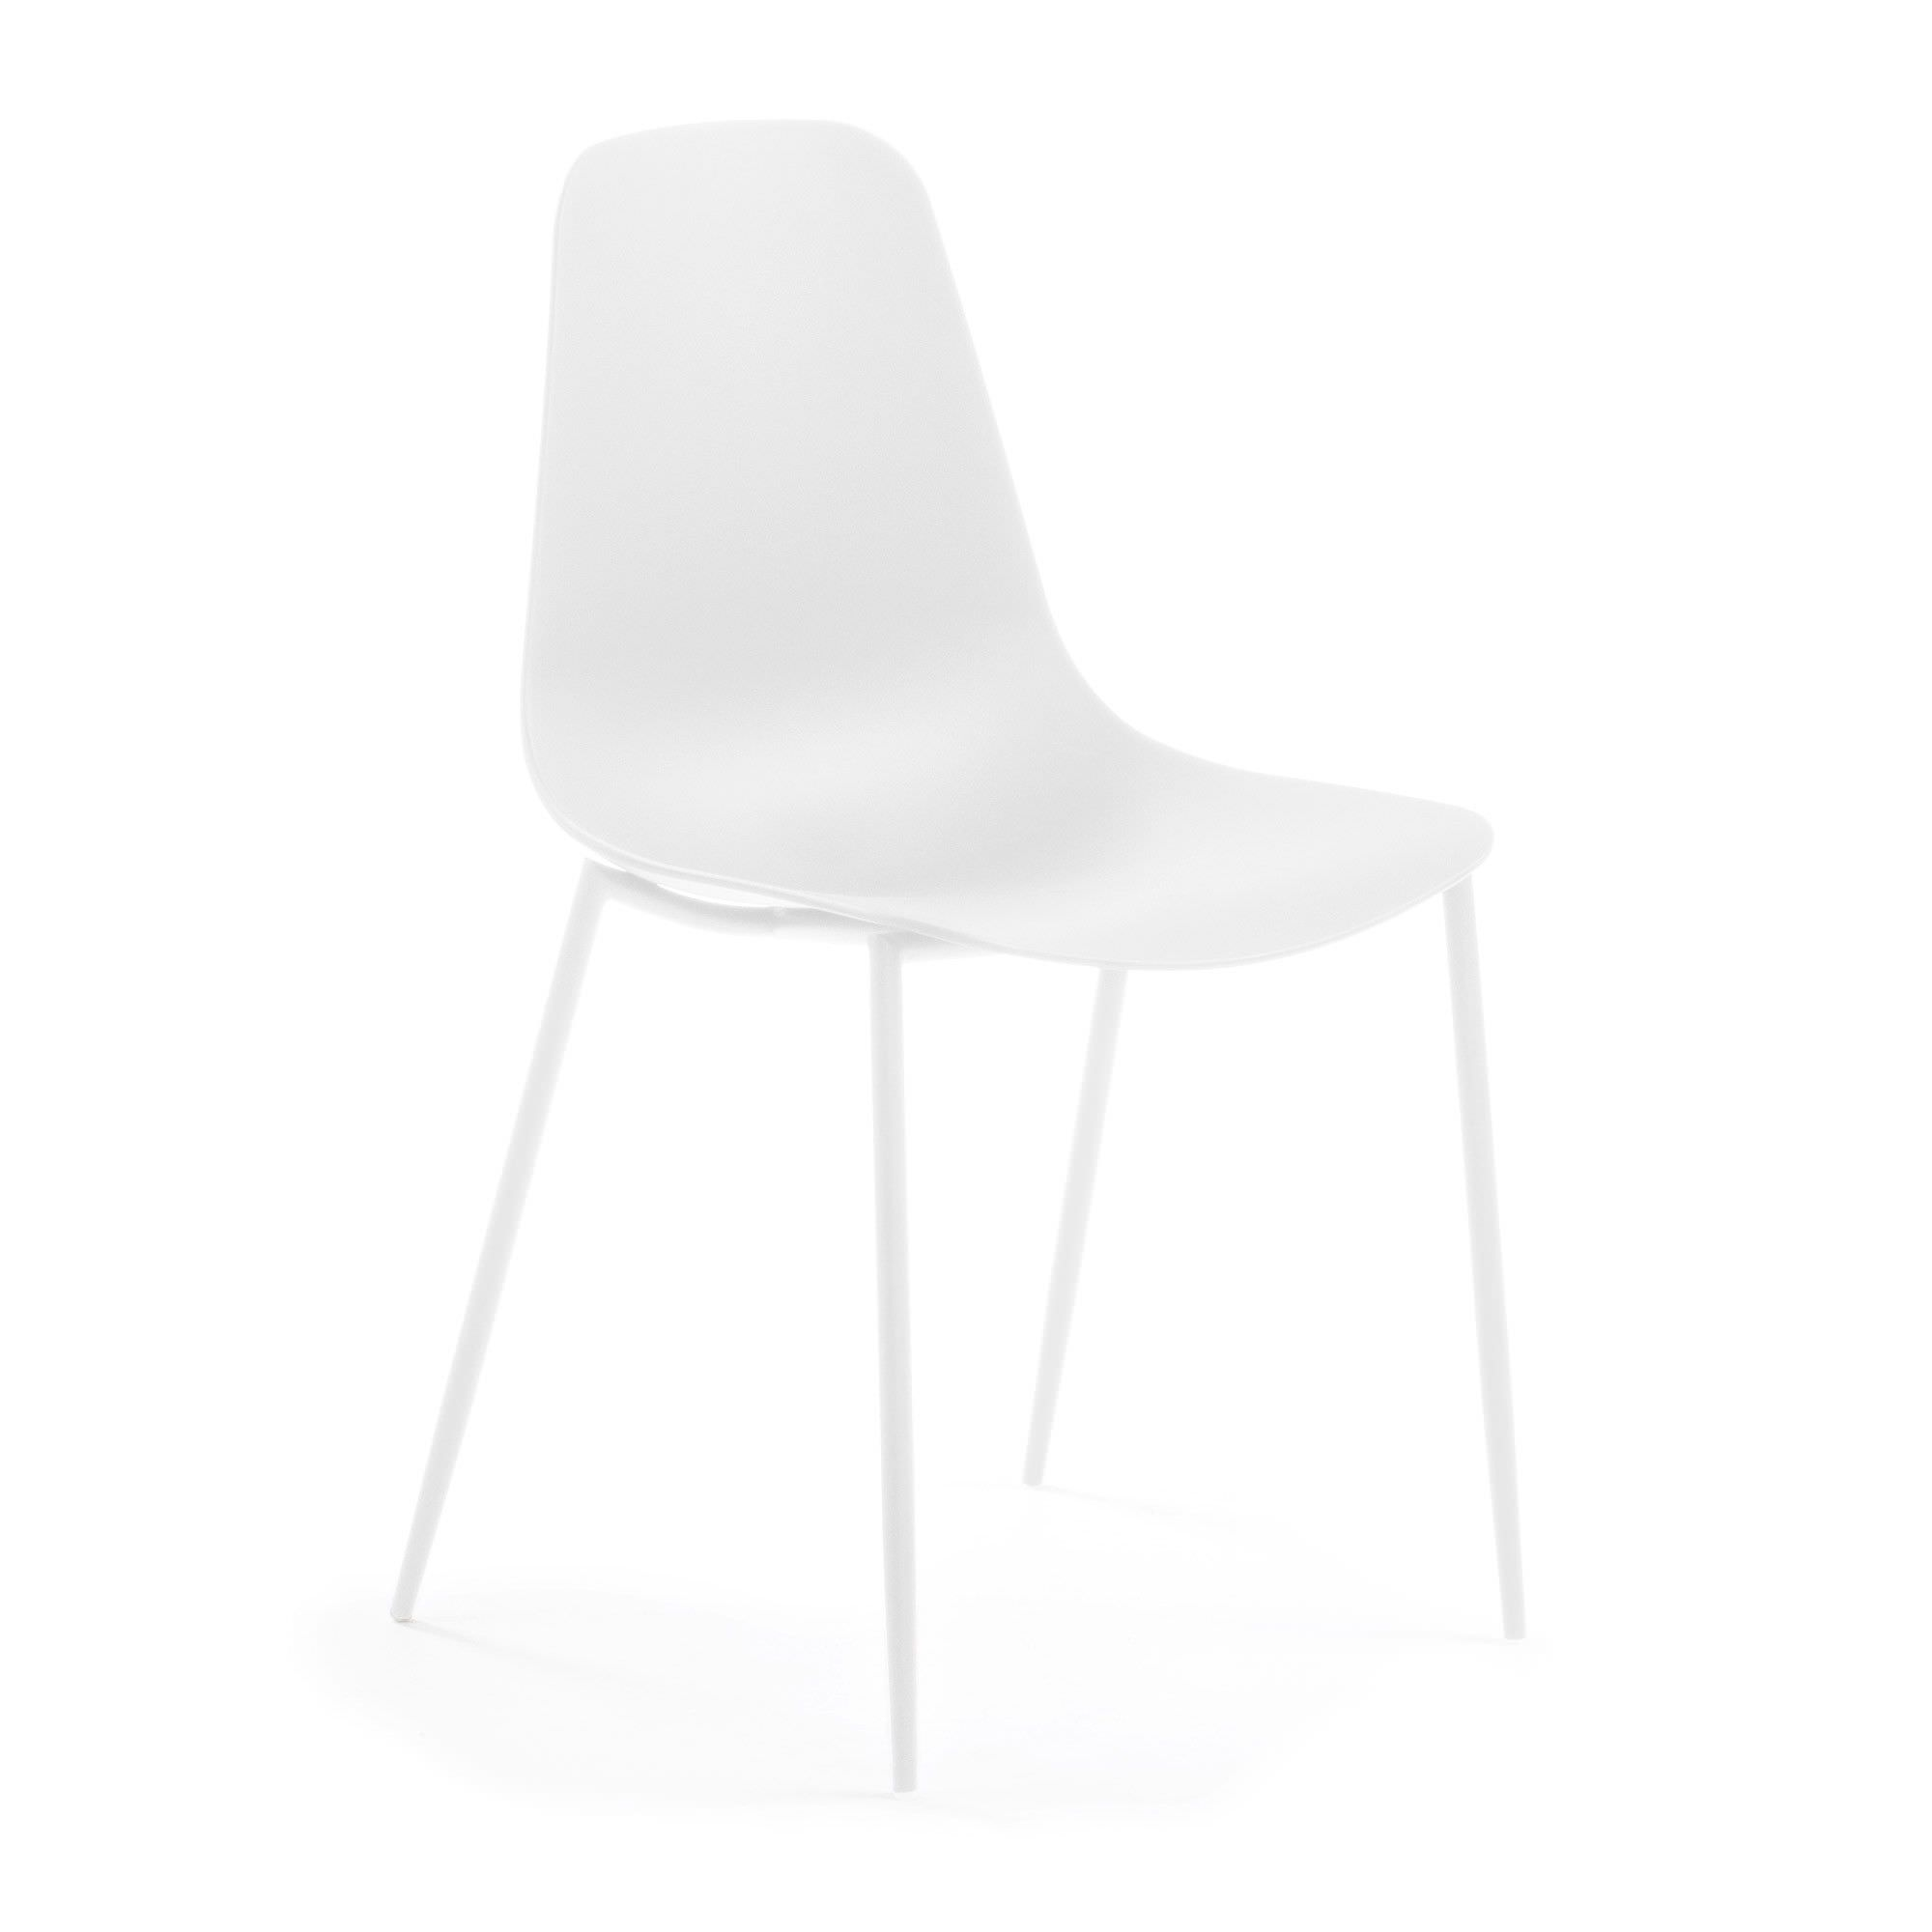 Wynifred Dining Chair, White